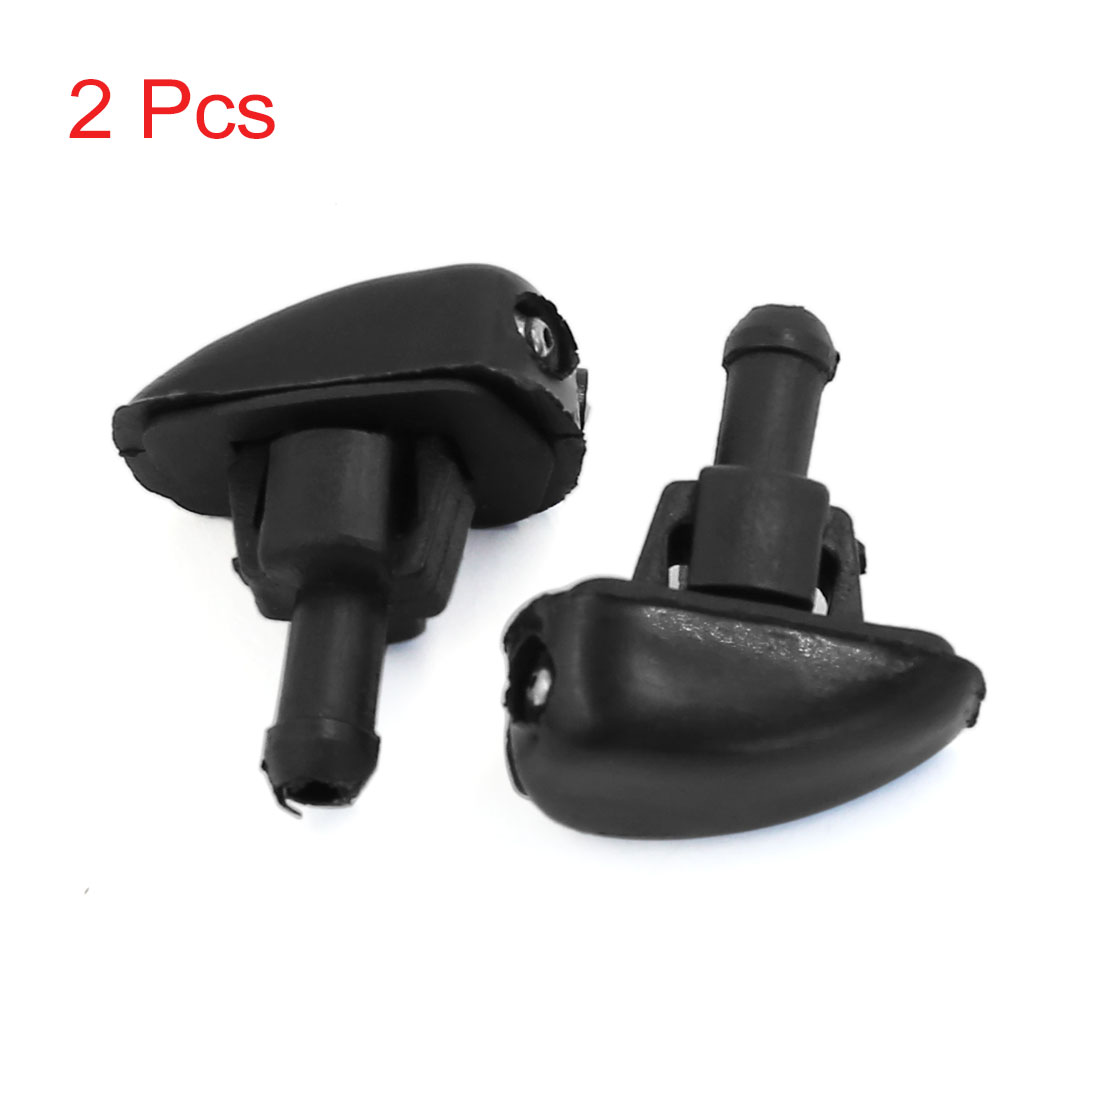 X Autohaux 2Pcs Car Windshield Windscreen Glass Cleaning Water Spray Injector Washer Nozzle